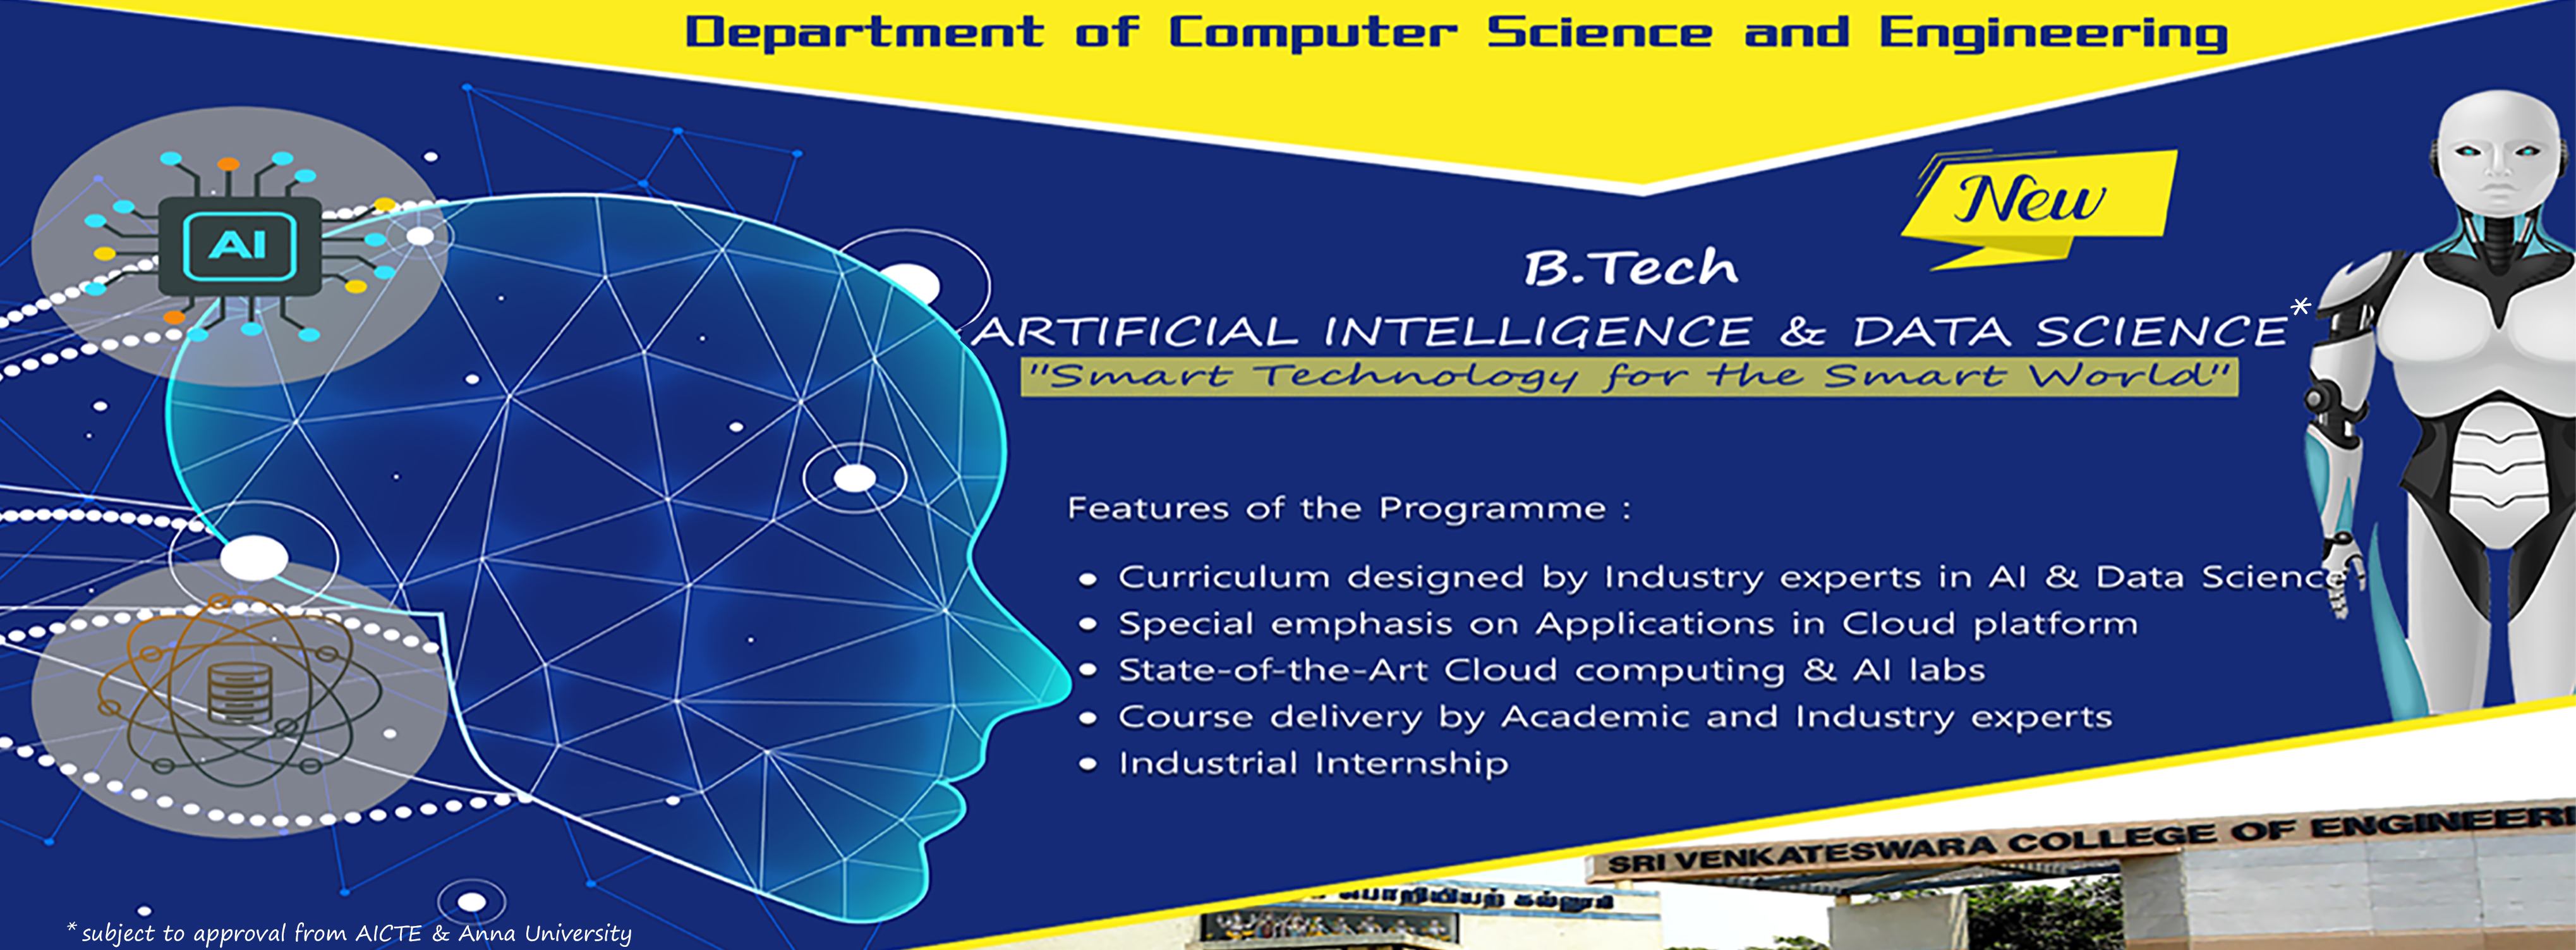 Artificial Intelligence and Data Science